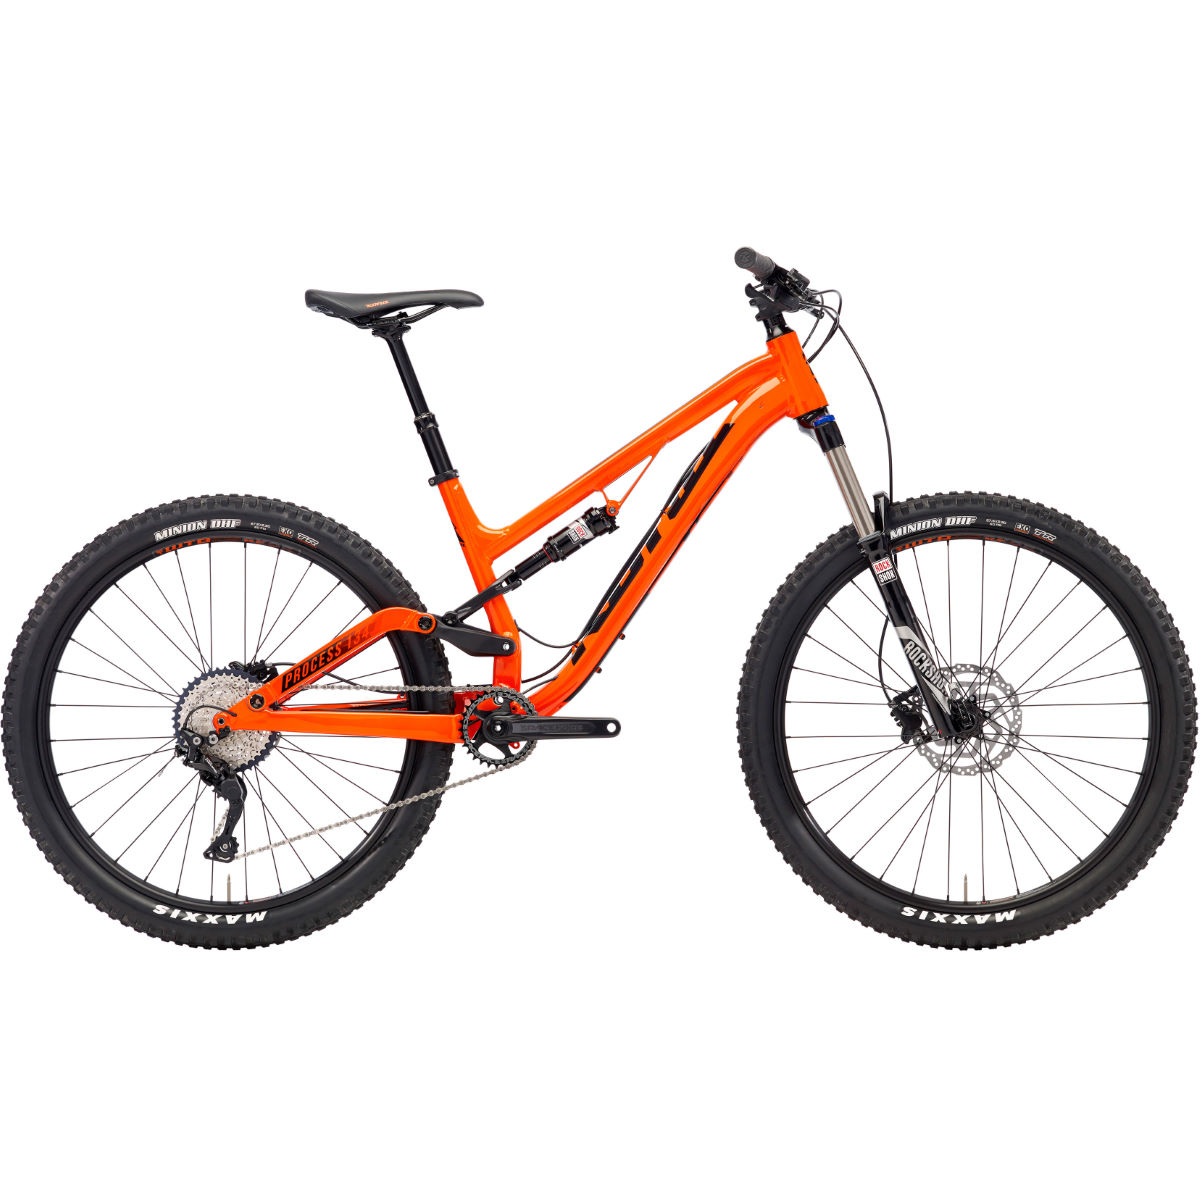 Kona Process 134 SE (2018) Mountain Bike - Bicicletas MTB doble suspensión